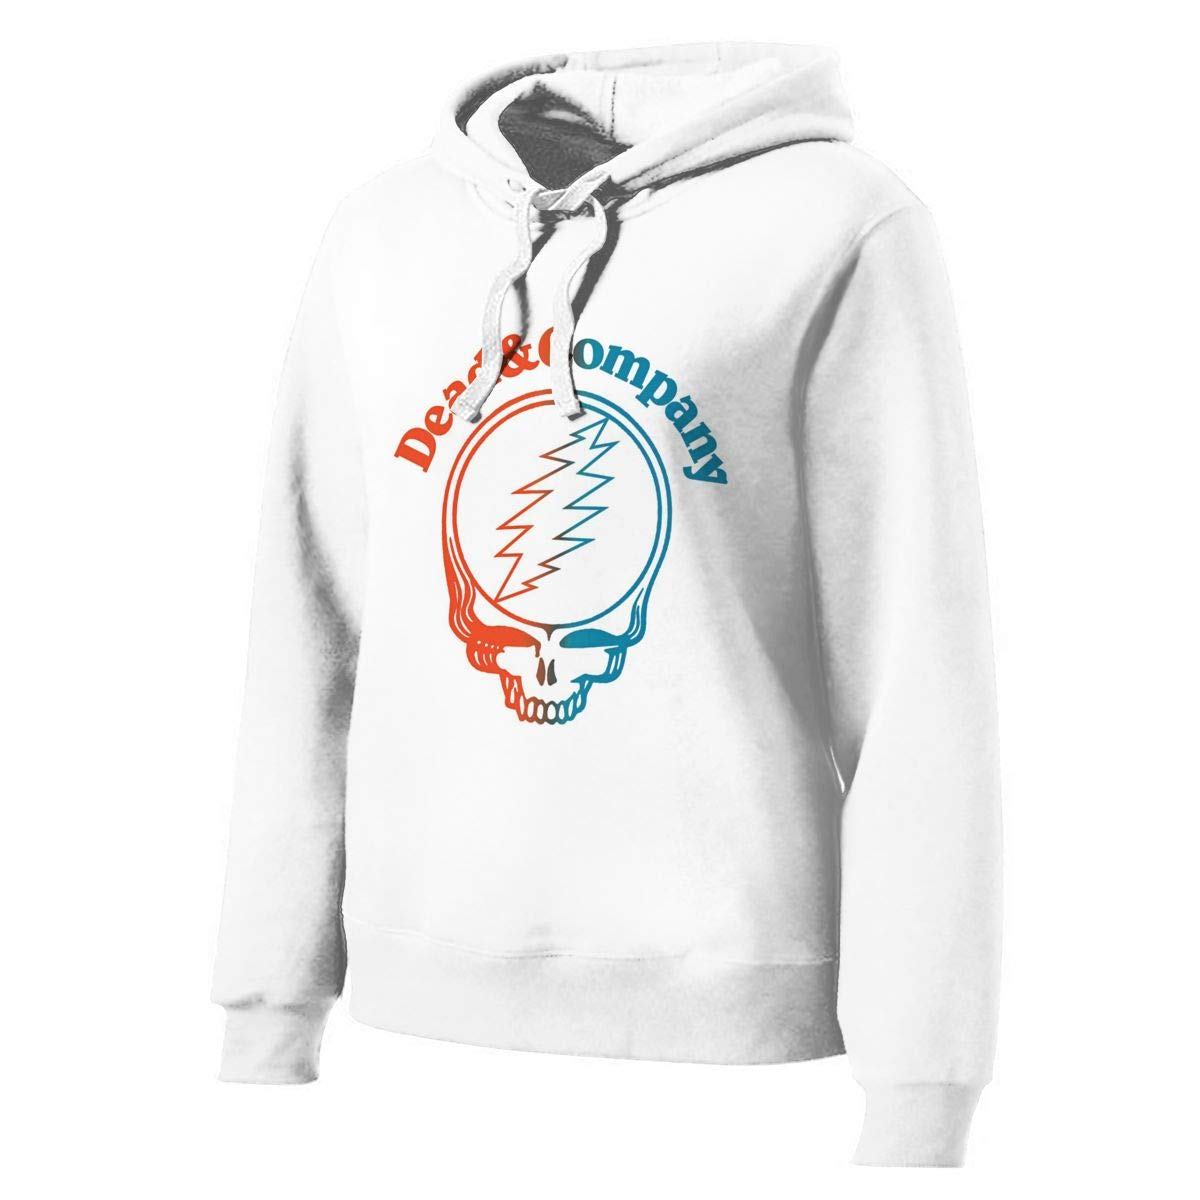 Amazon.com: Womans Dead & Company - Sudadera con capucha y ...